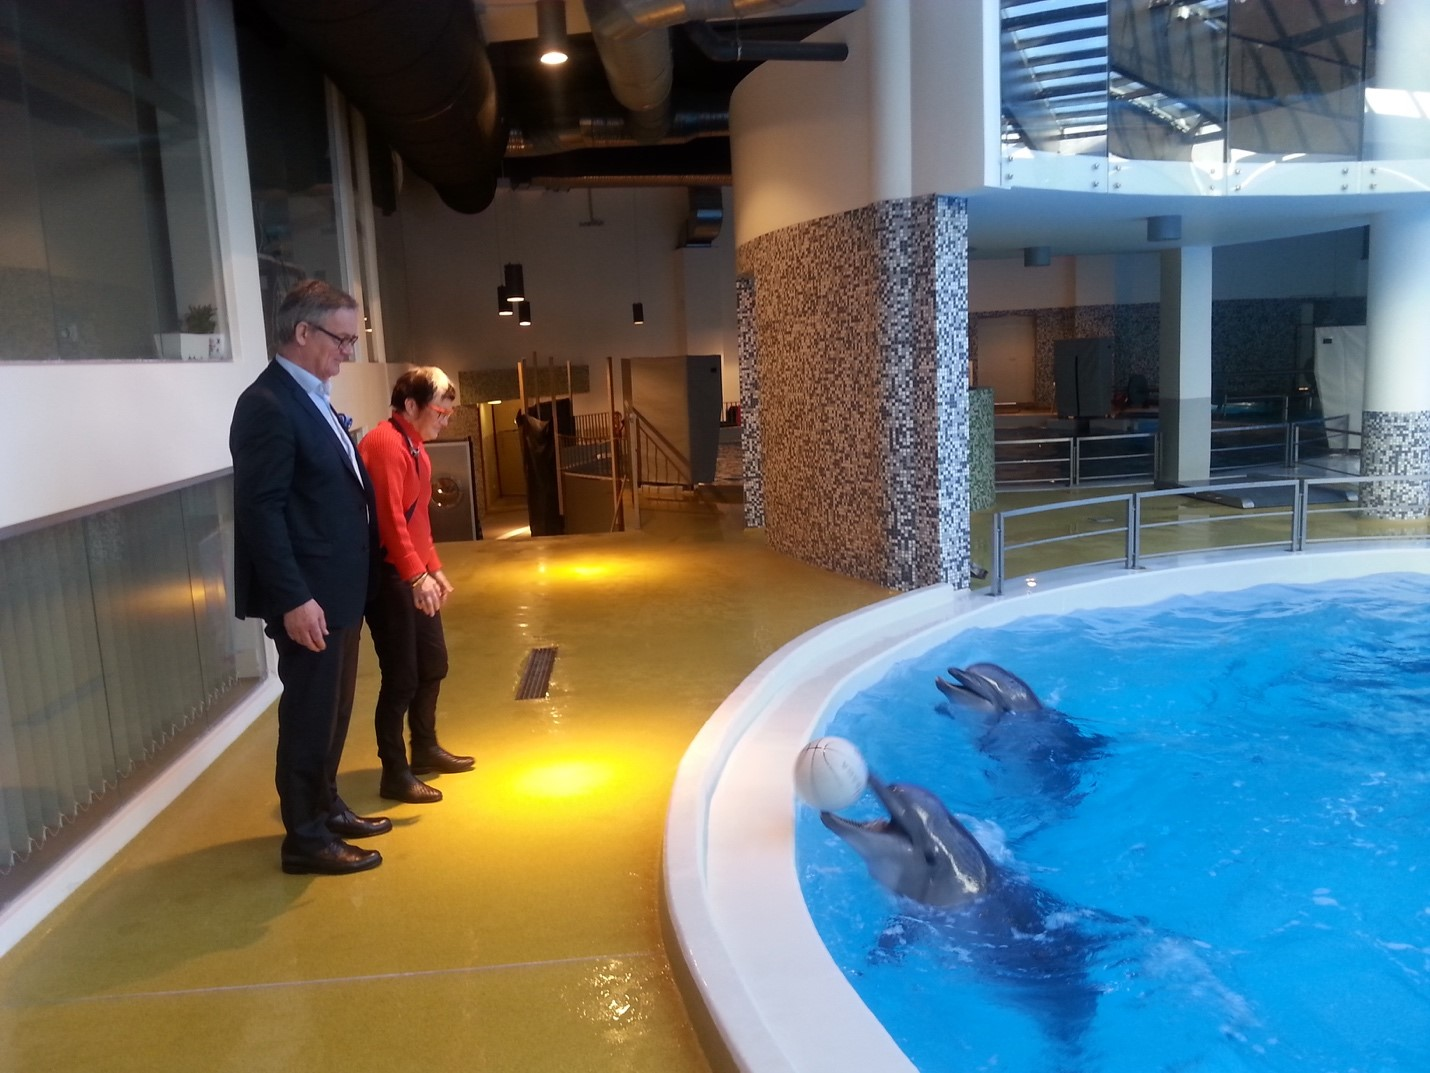 Trustee Per and PDG Anette at the Dolphin Assisted Therapy Center (DAT) in Klaipeda, Lithuania.